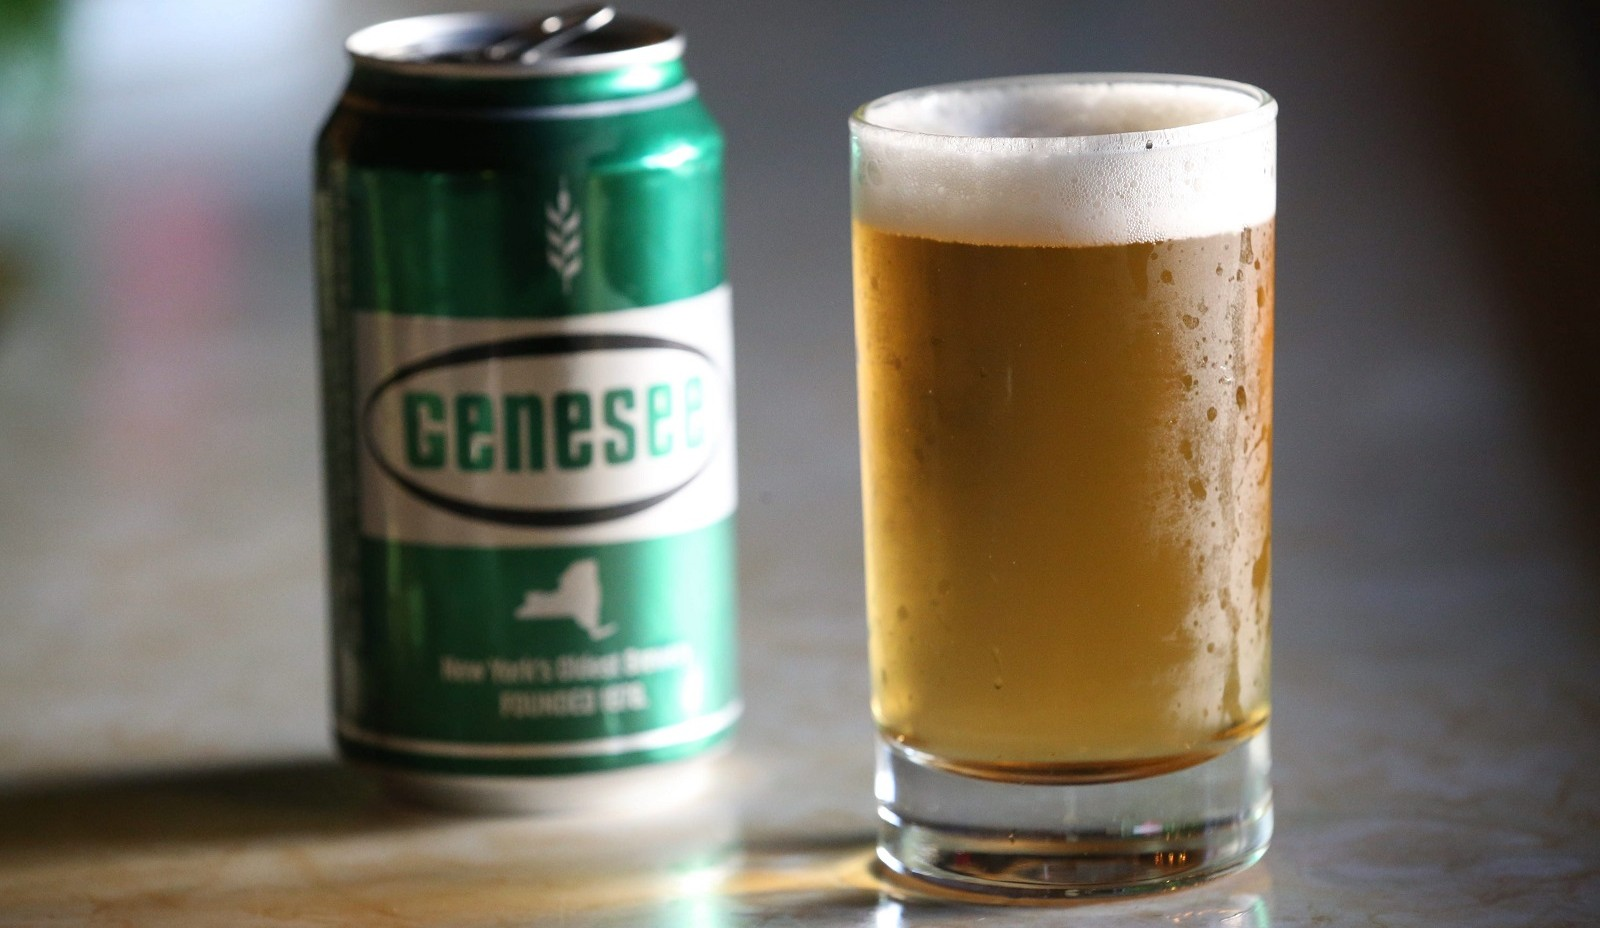 R&L Lounge in Buffalo sells cans of Genesee Cream Ale. (Sharon Cantillon/Buffalo News)